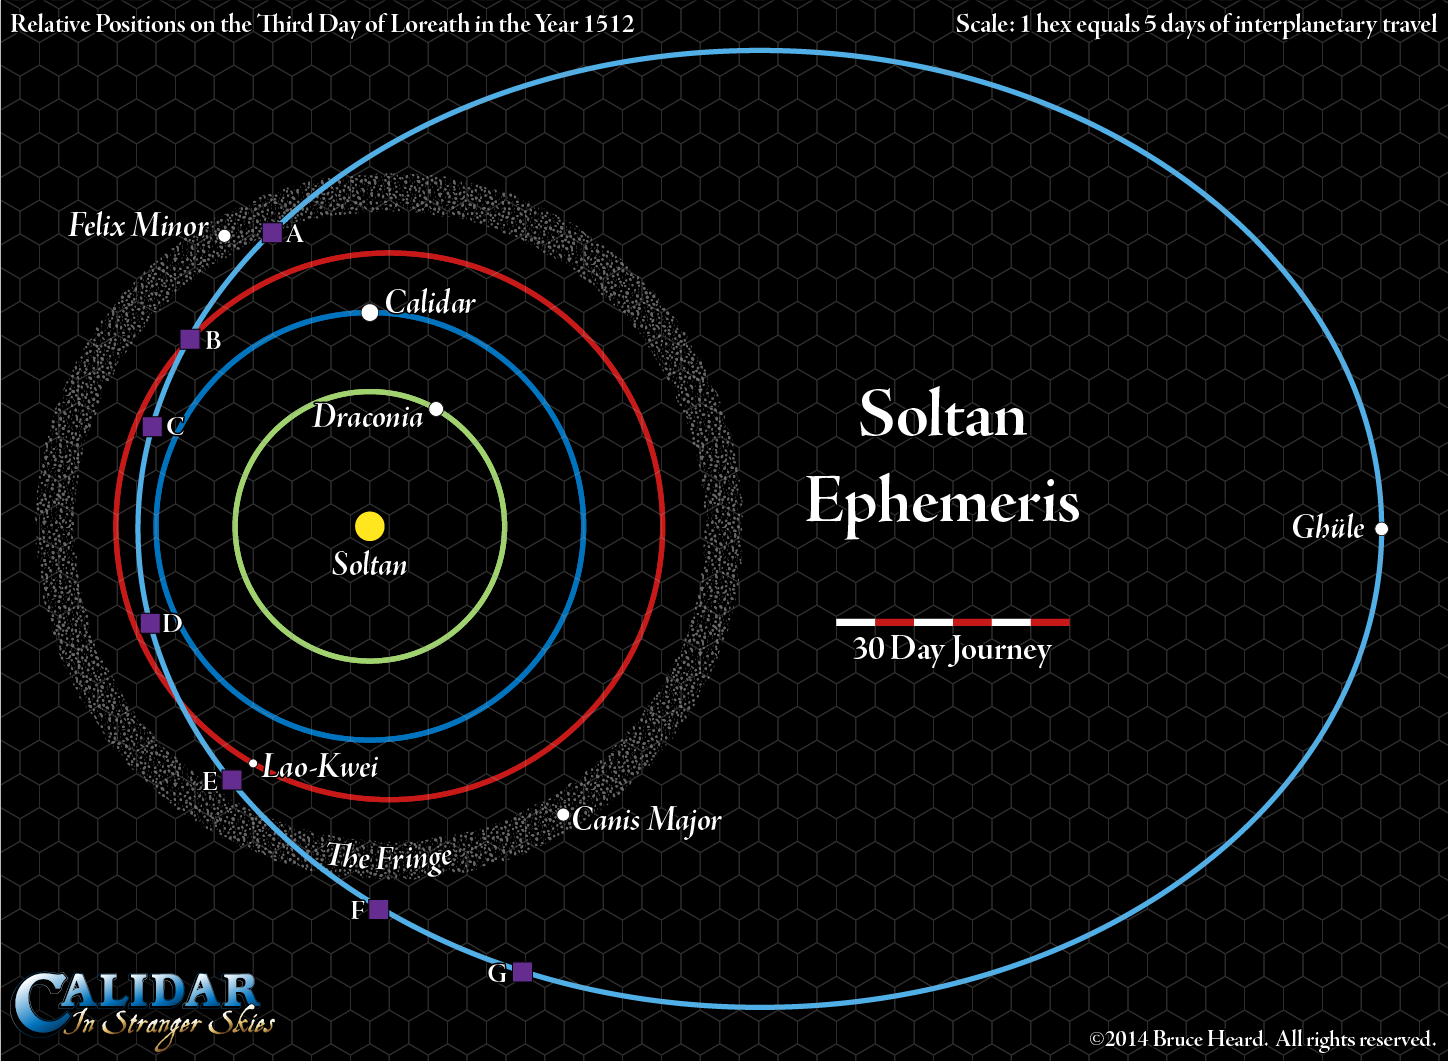 Soltan Ephemeris Overview and Orbital Map, showing Draconia, Calidar and its moons, Lao-Kwei and its moon, the Fringe, and Ghüle.  Solar System Map.